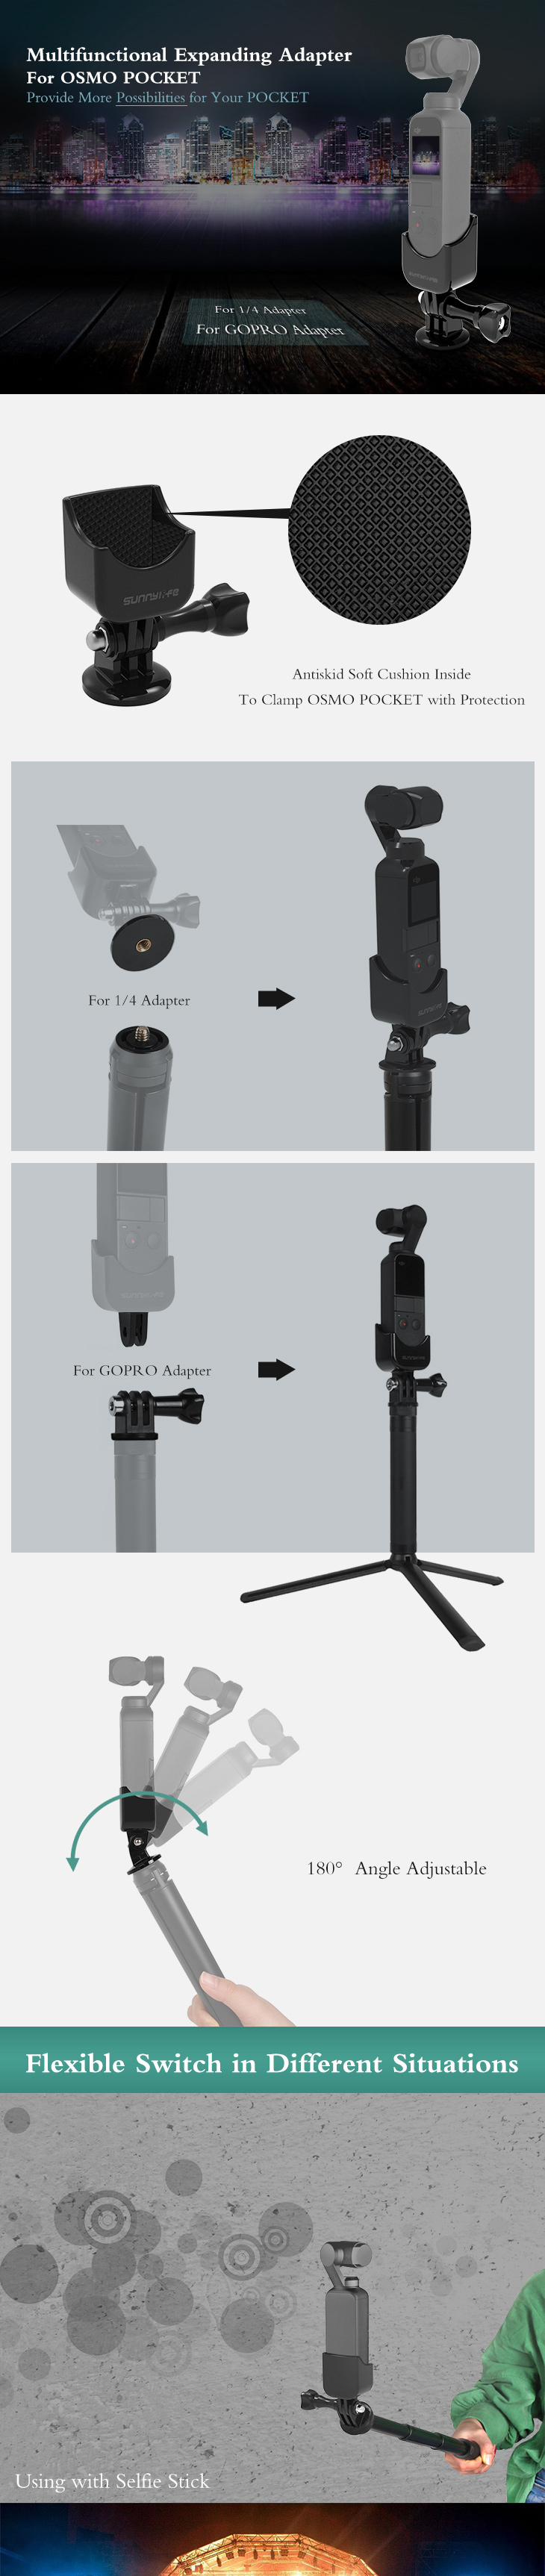 1/4 Adapter Multifunctional Expanding Switch Connection for OSMO POCKET gimbal Accessories 3